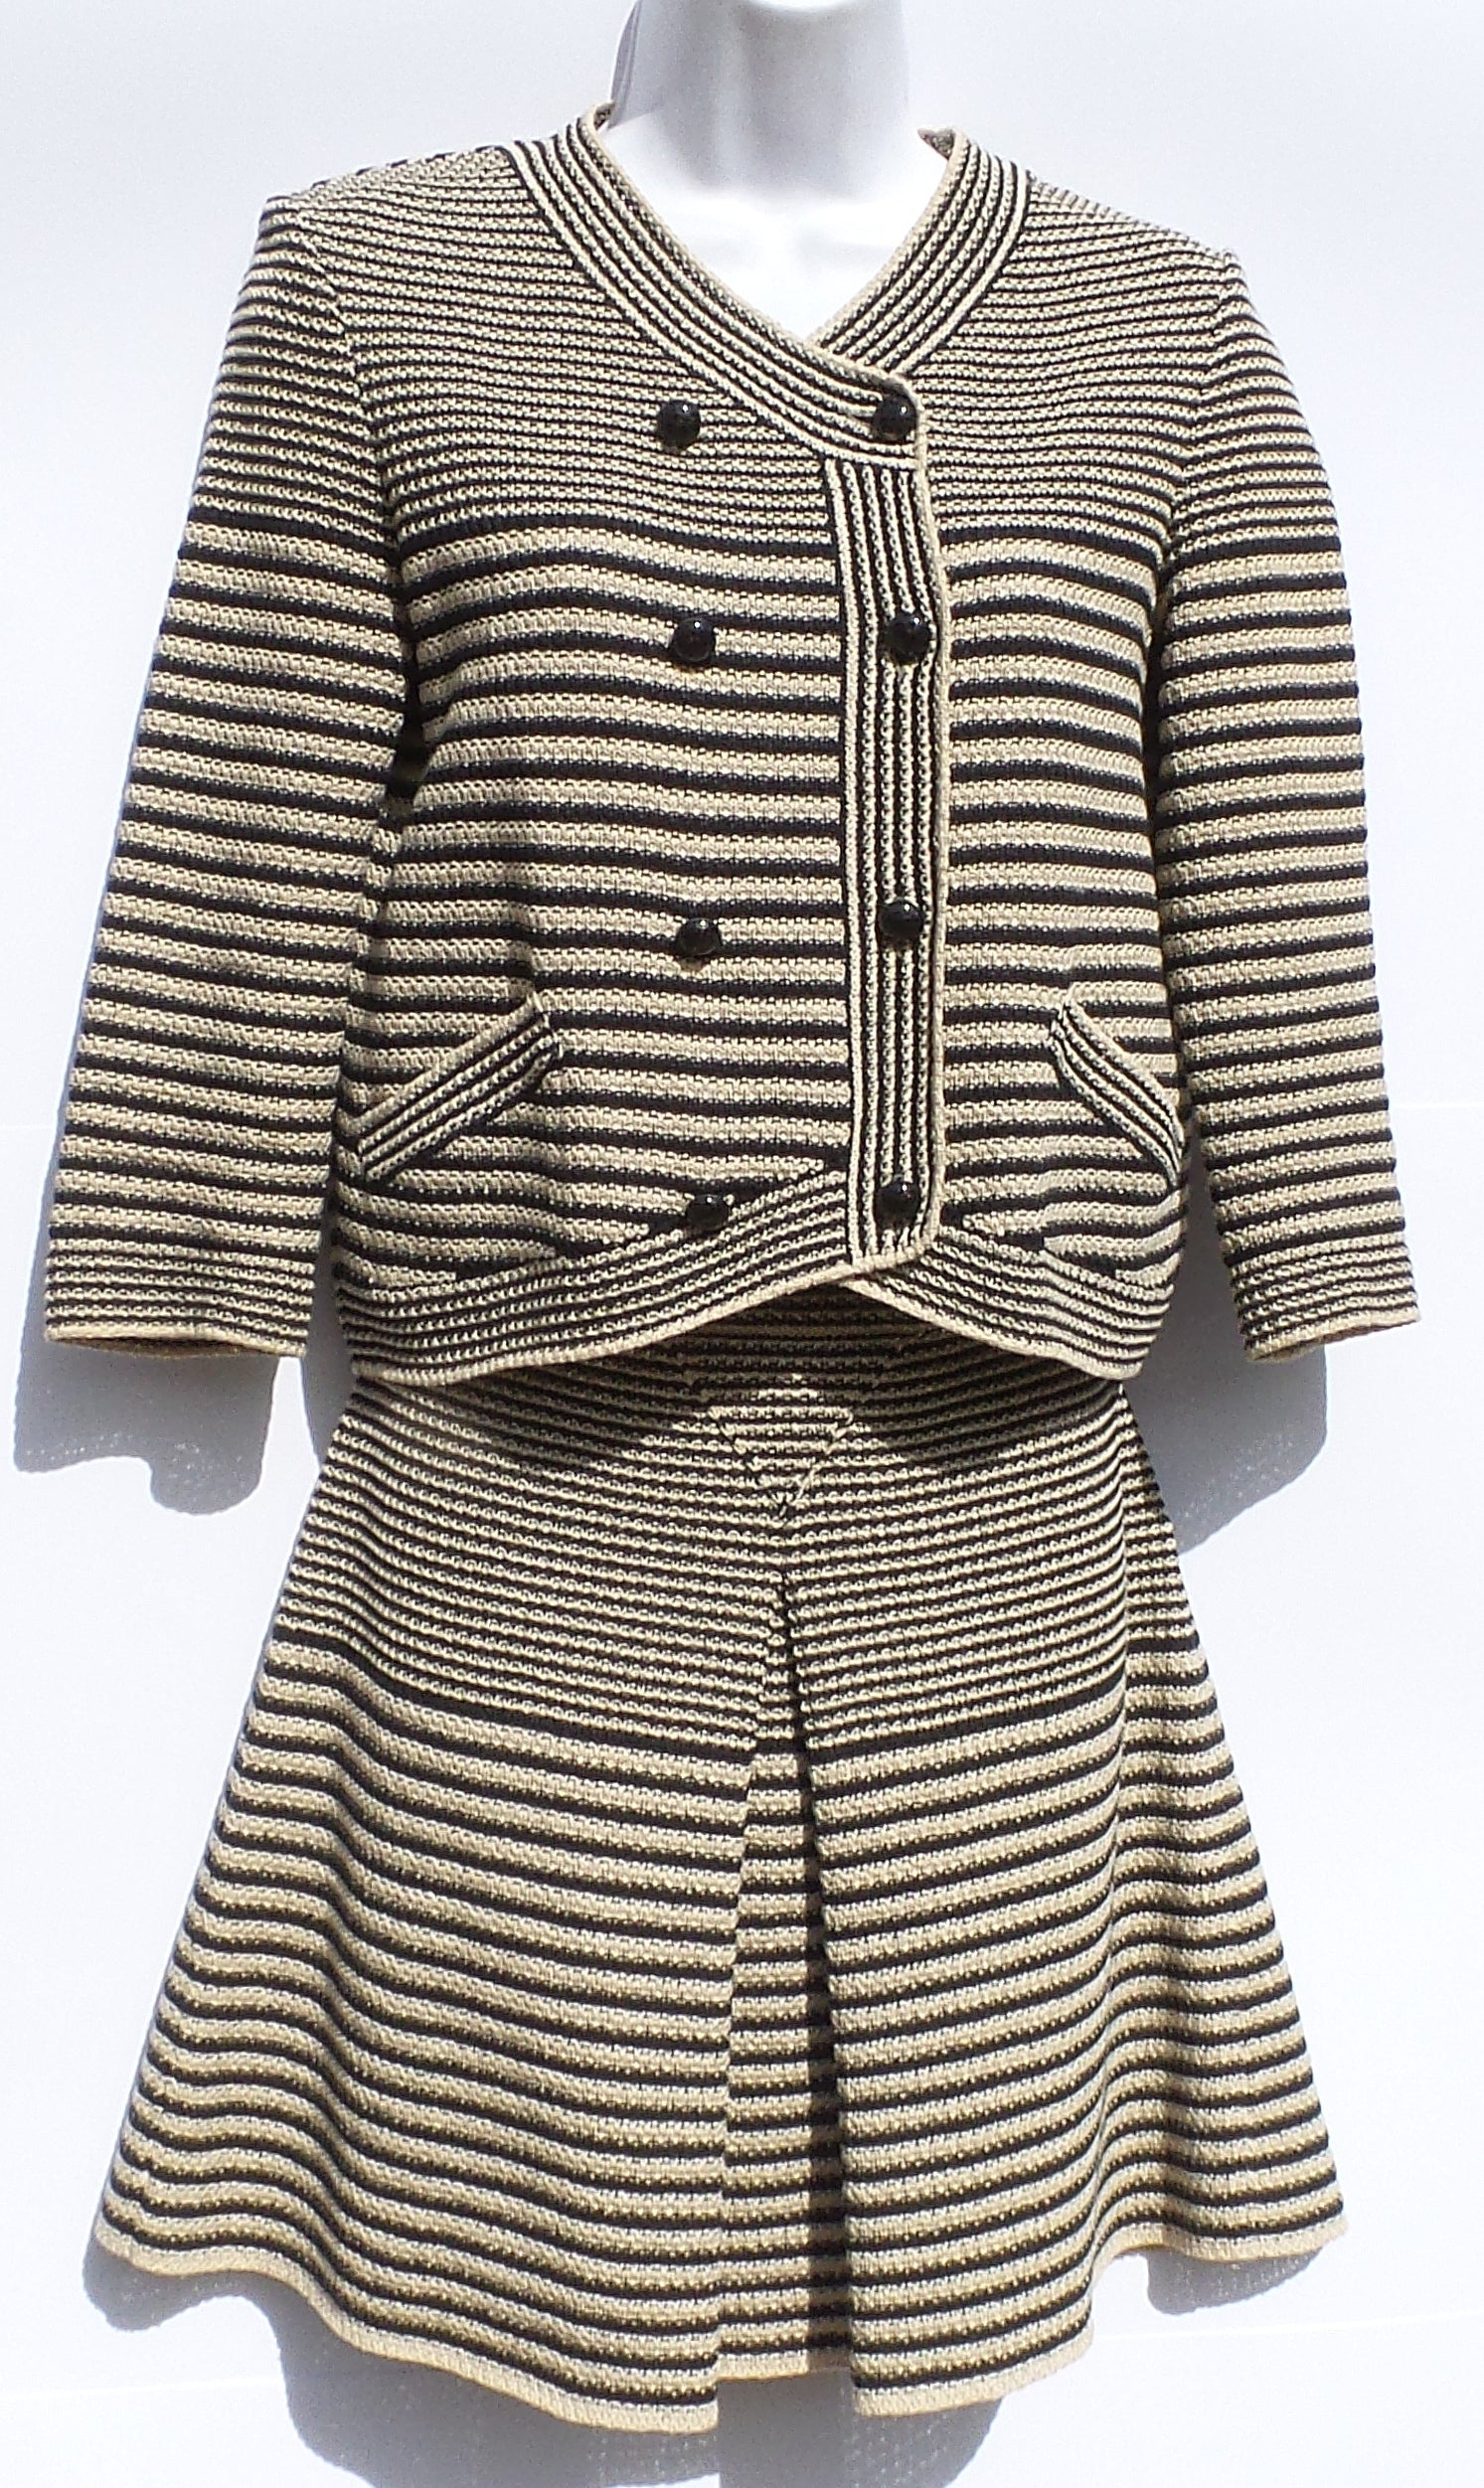 'Sold' CHANEL 15S Beige Black Striped Knit CC Button Sweater Jacket Skirt Suit Set 36